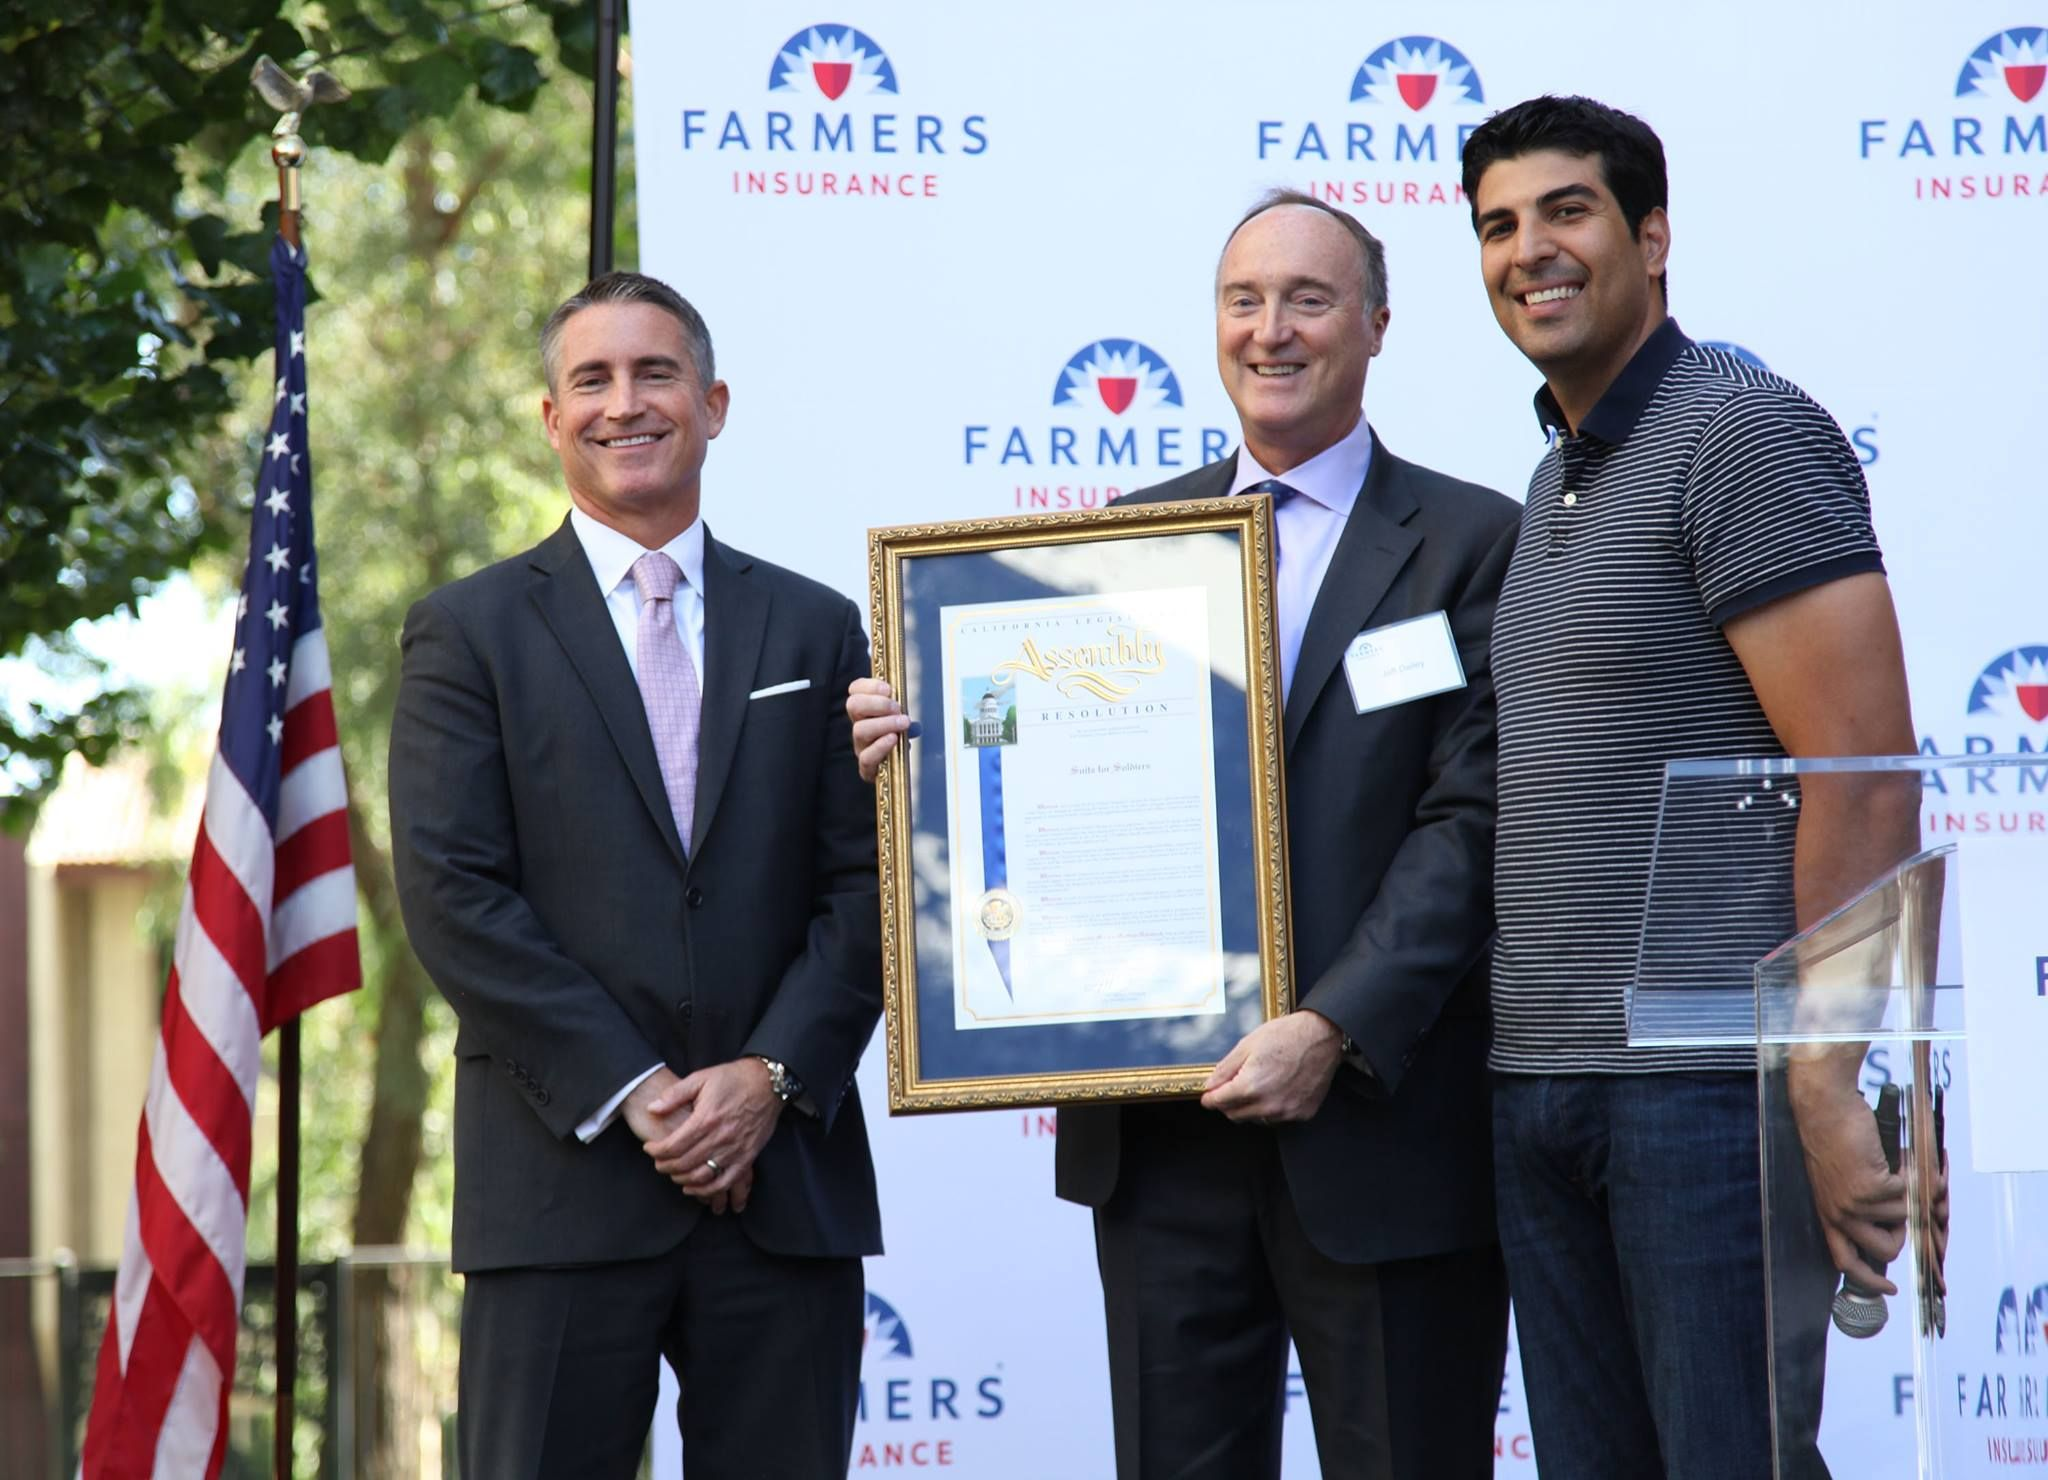 Farmers Insurance CEO Jeff Dailey and Los Angeles Deputy